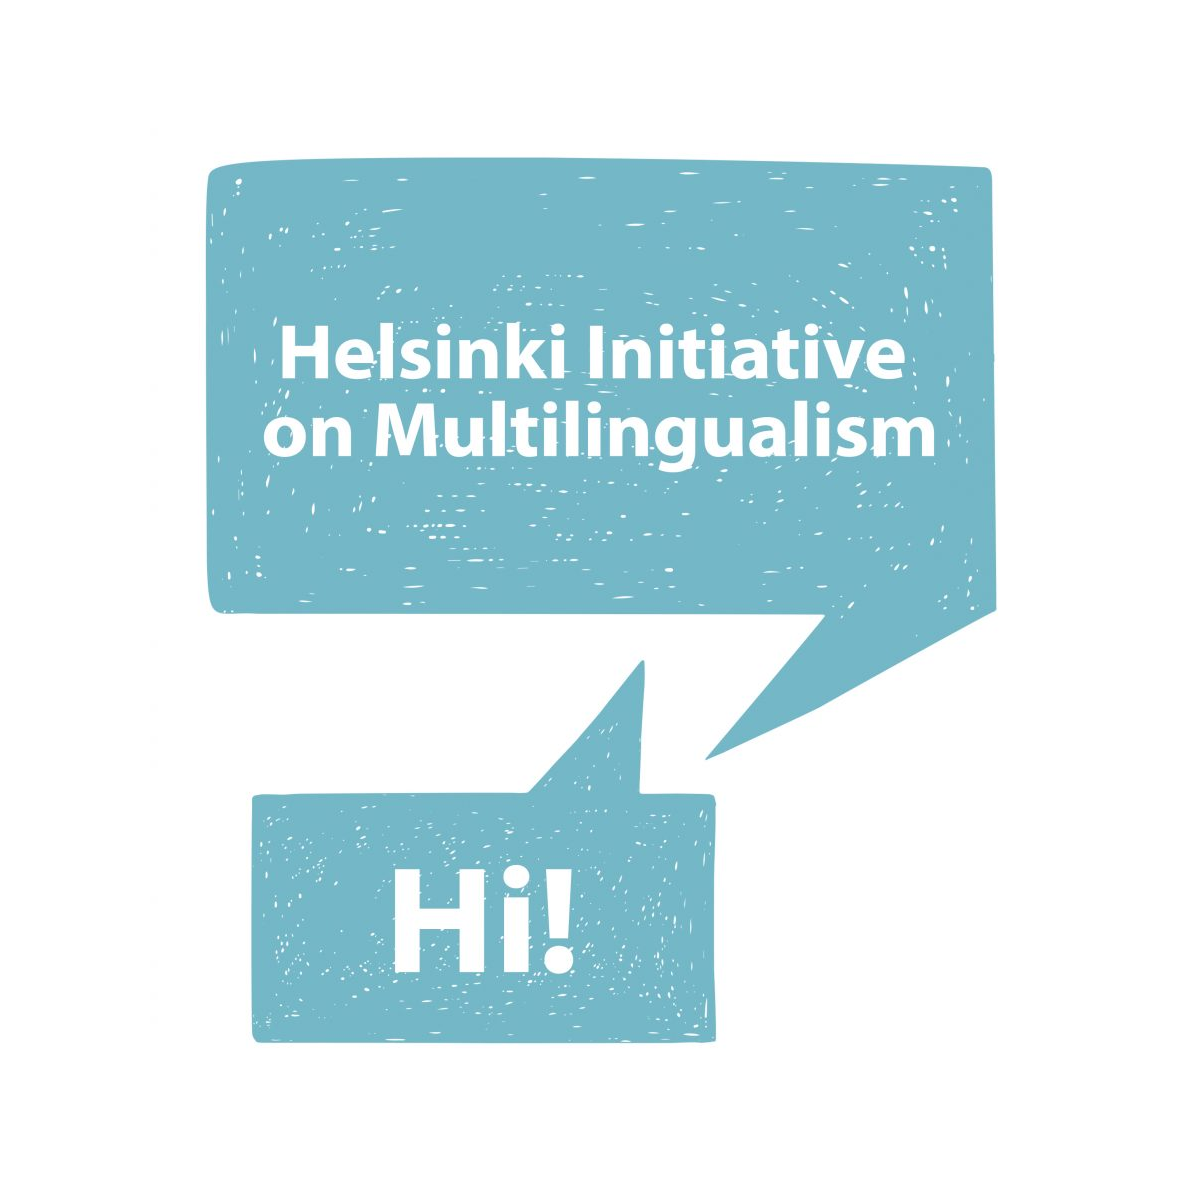 illustration Initiative d'Helsinki sur le multilinguisme dans la communication savante